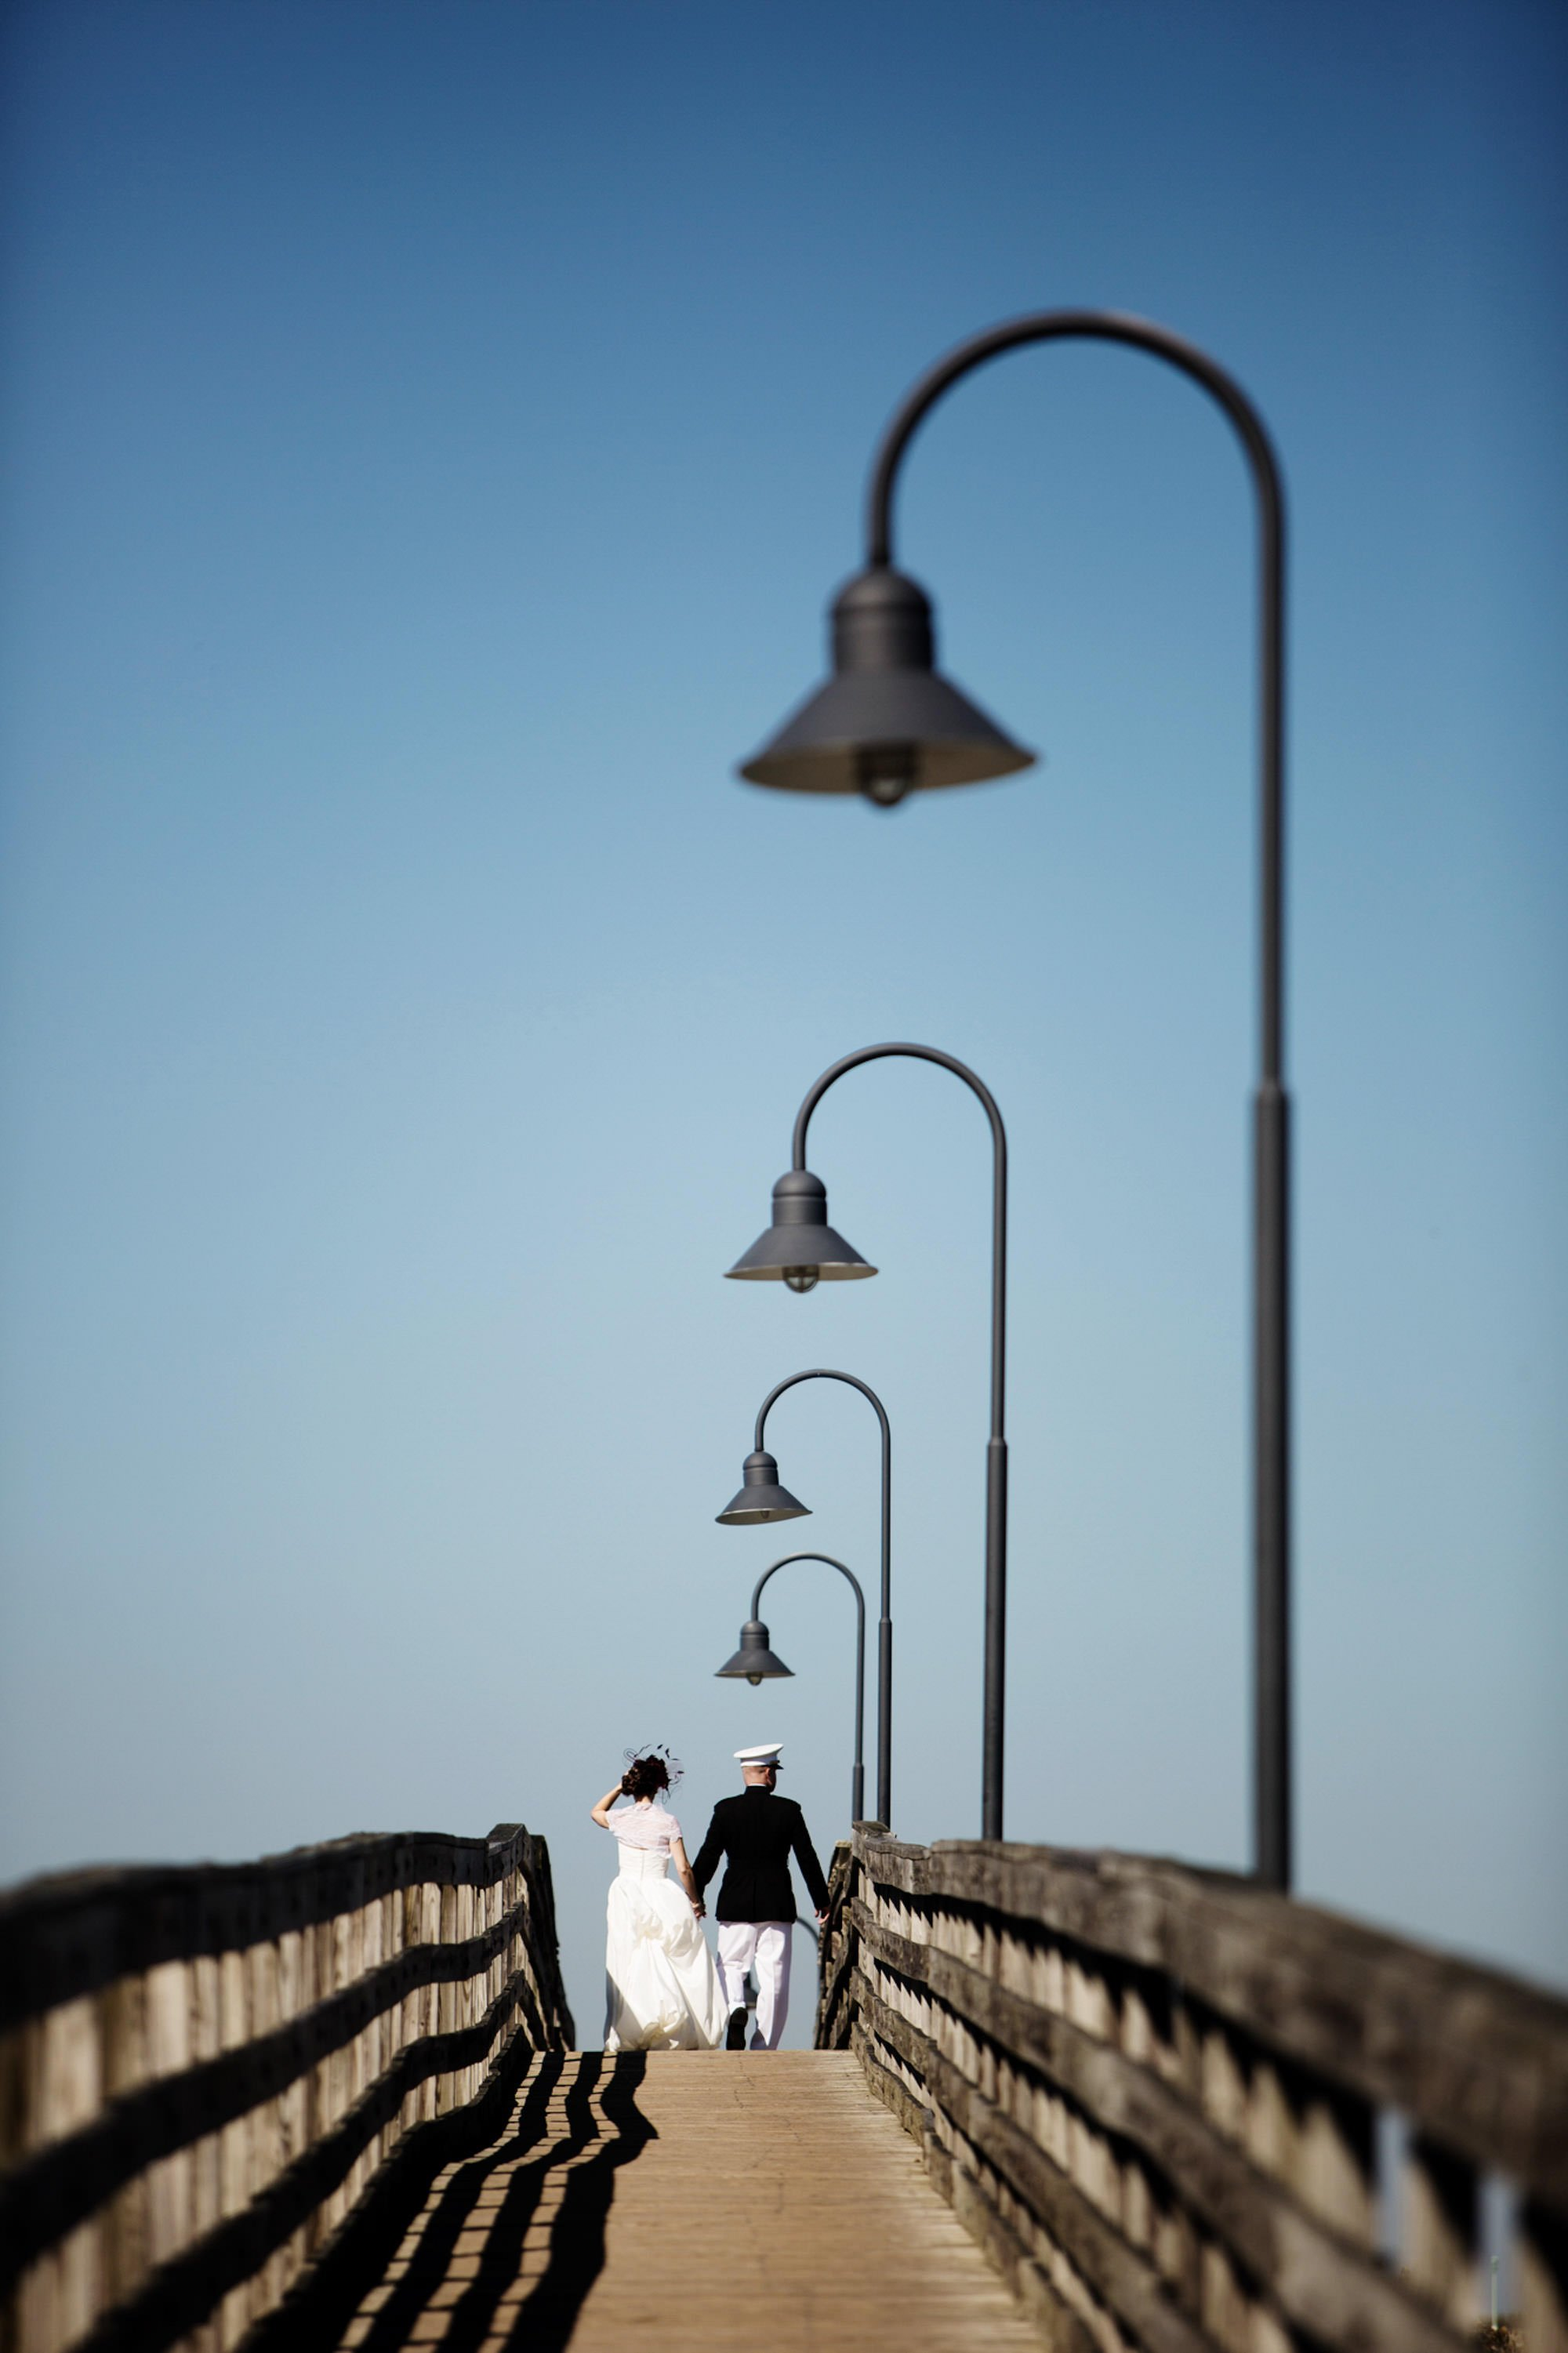 The bride and groom walk down a boardwalk at the Annapolis Naval Academy.